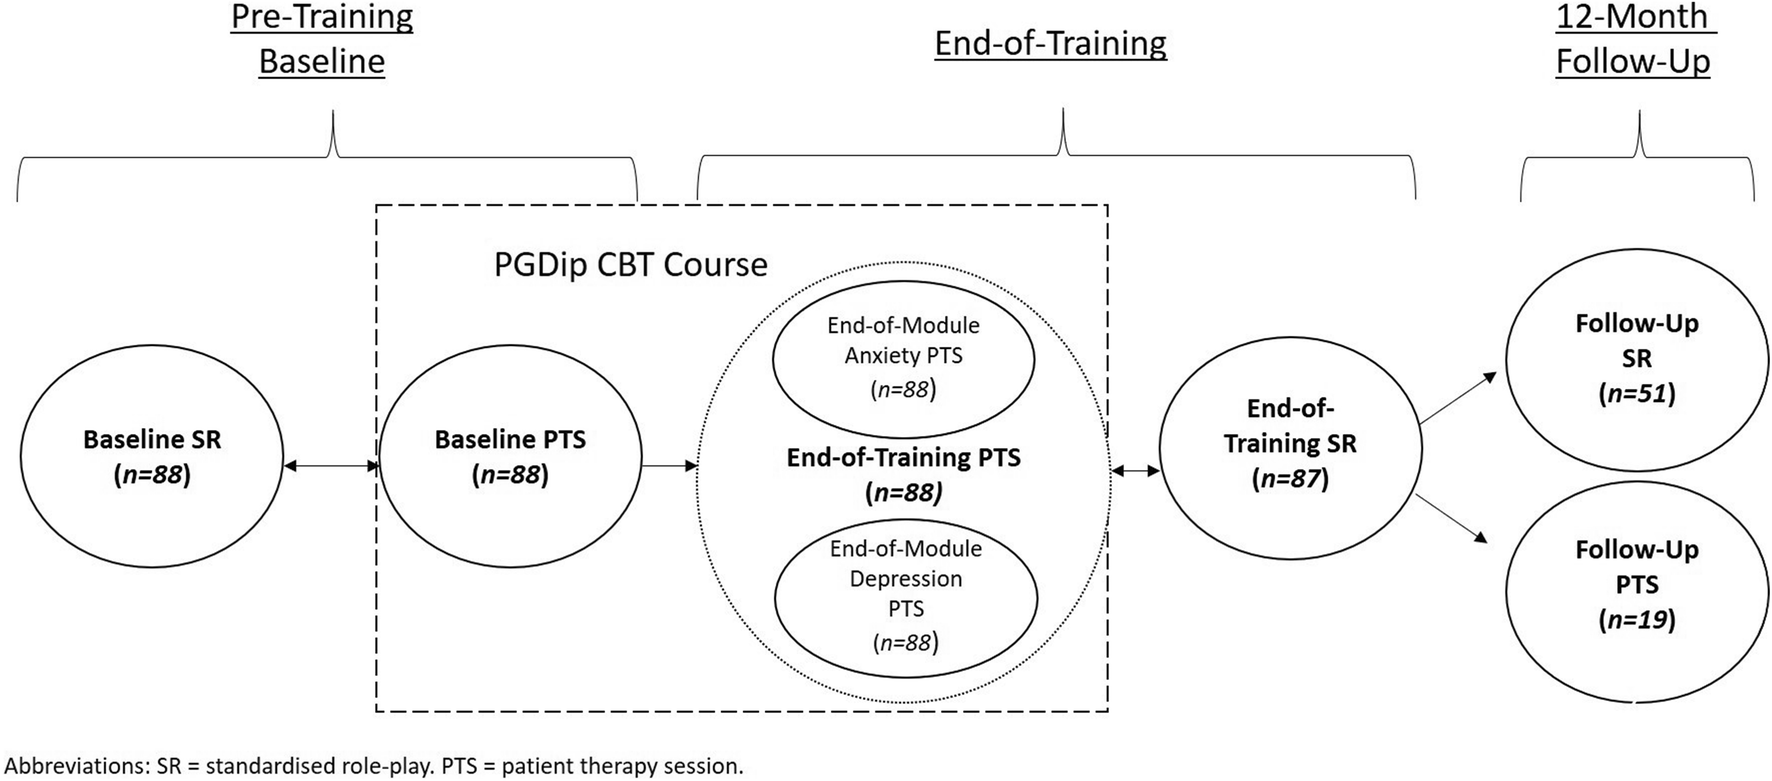 Evaluating CBT Clinical Competence with Standardised Role Plays and